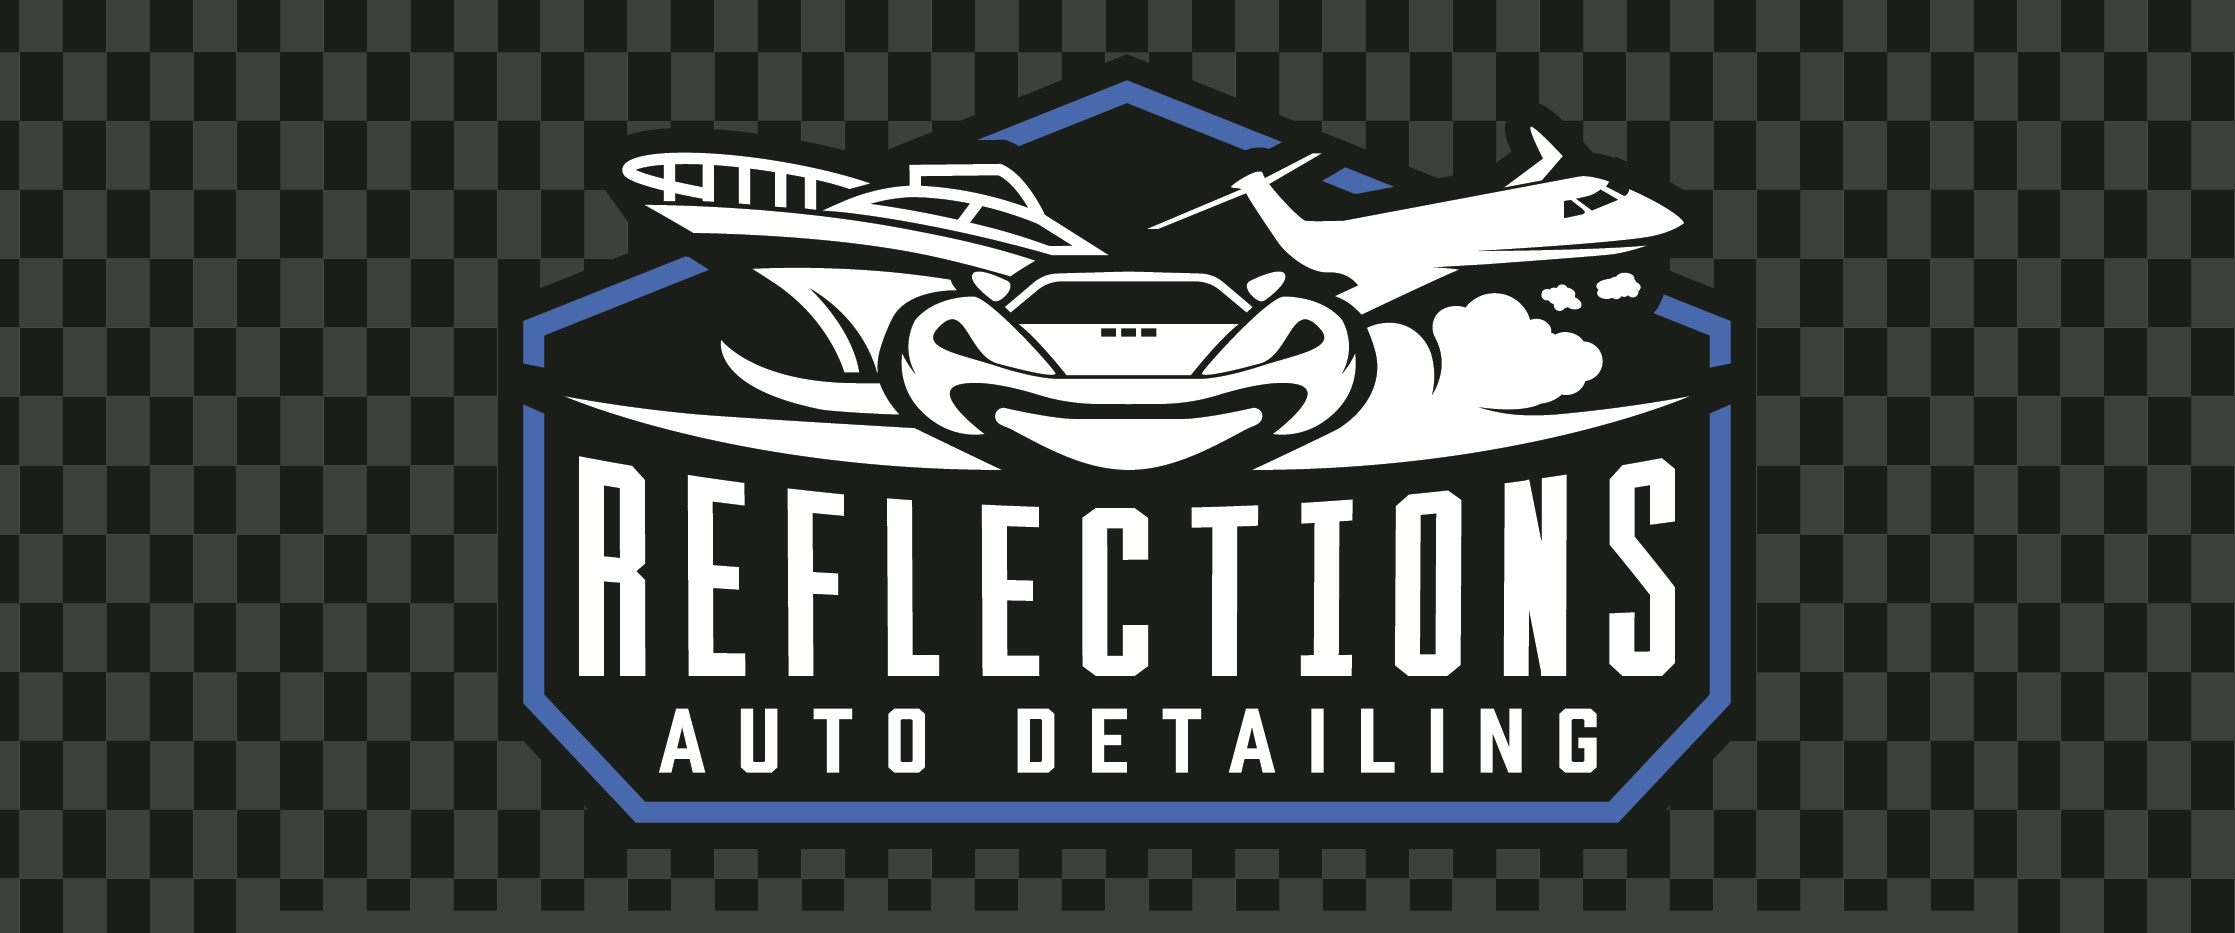 Reflections Auto Detailing